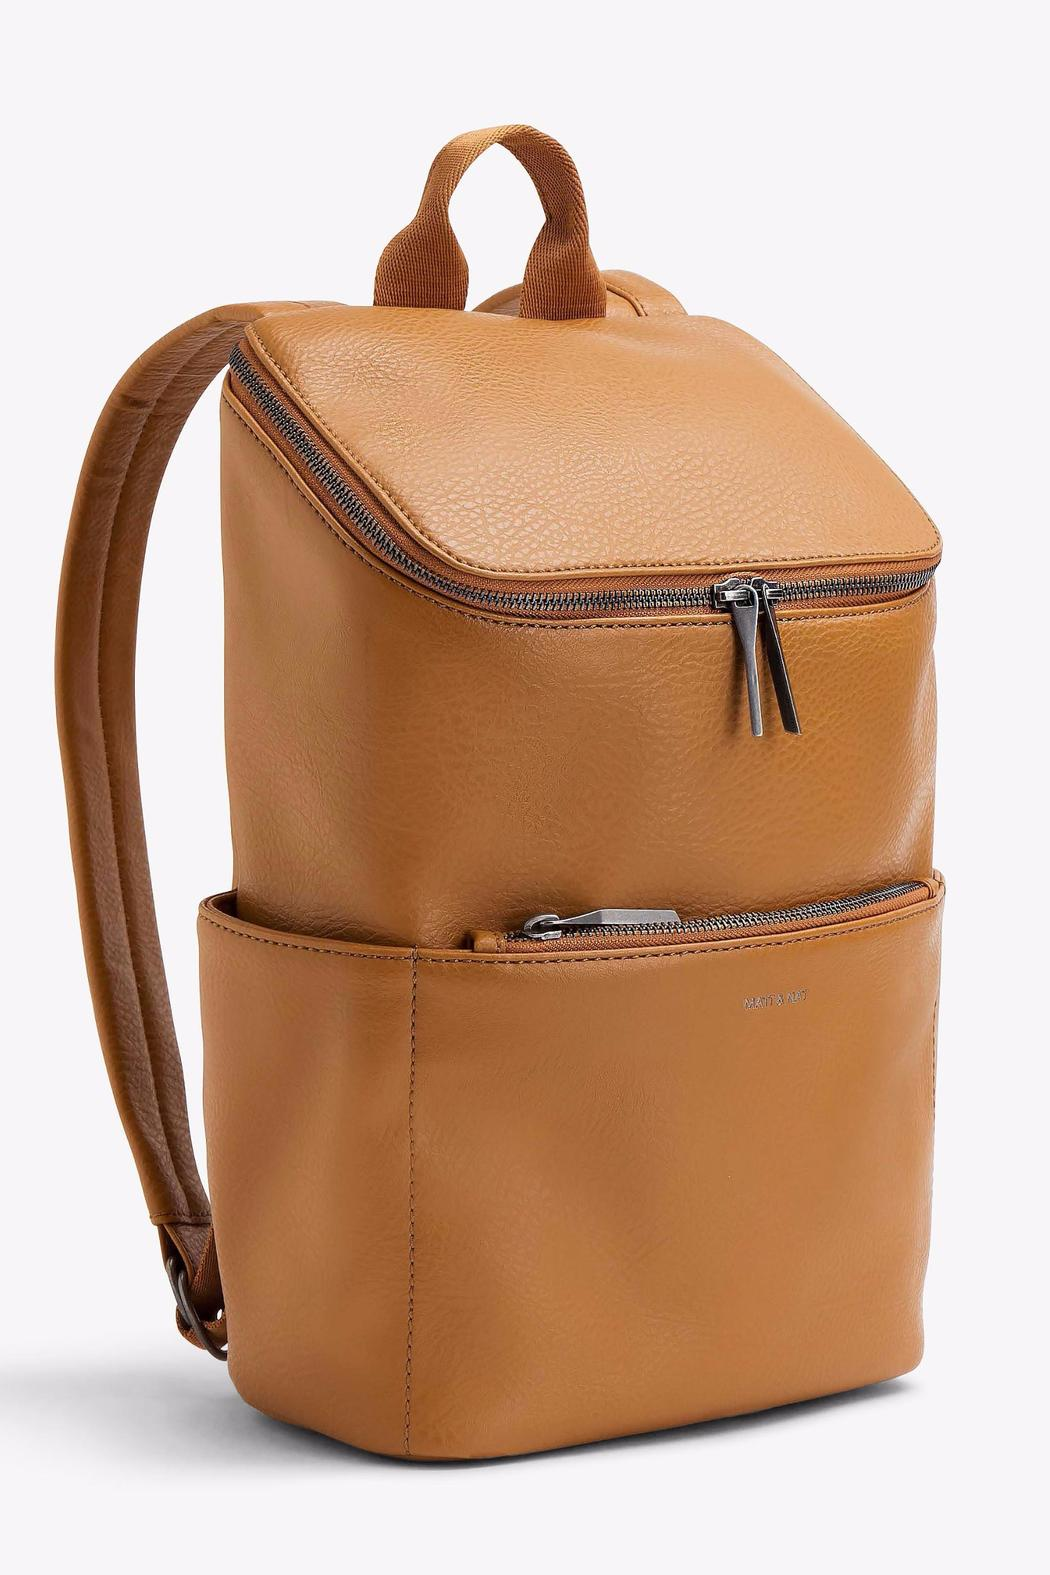 Matt & Nat Vegan Leather Backpack from Toronto by Lakeshore ...